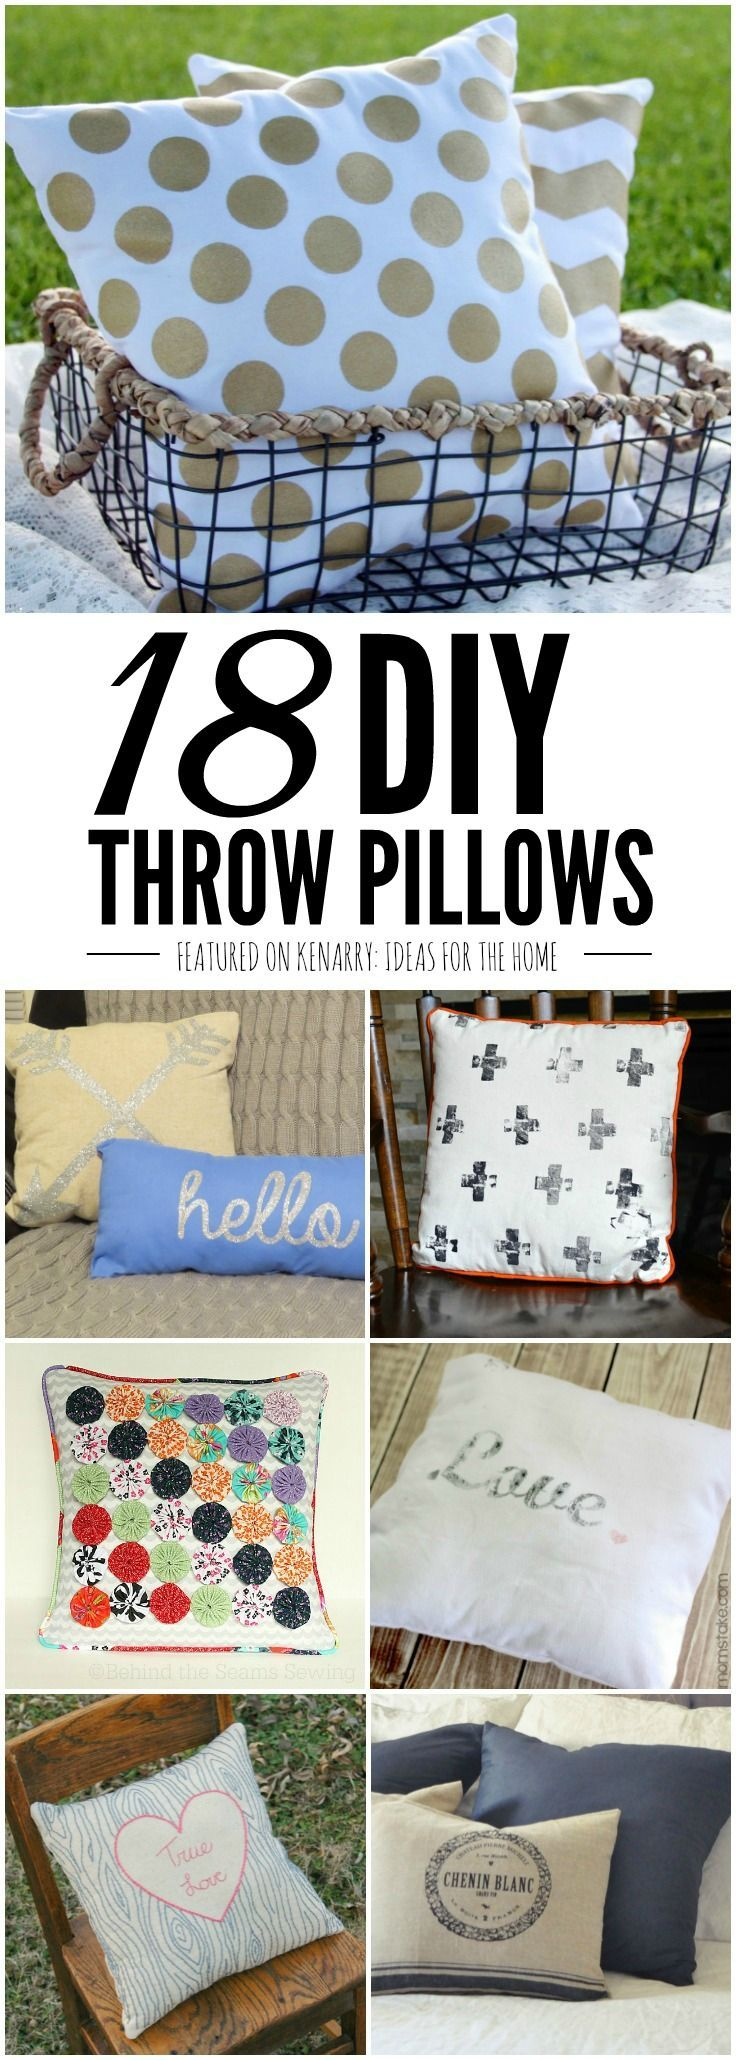 Ideas For Making Throw Pillows: 25+ unique Making throw pillows ideas on Pinterest   Diy throw    ,